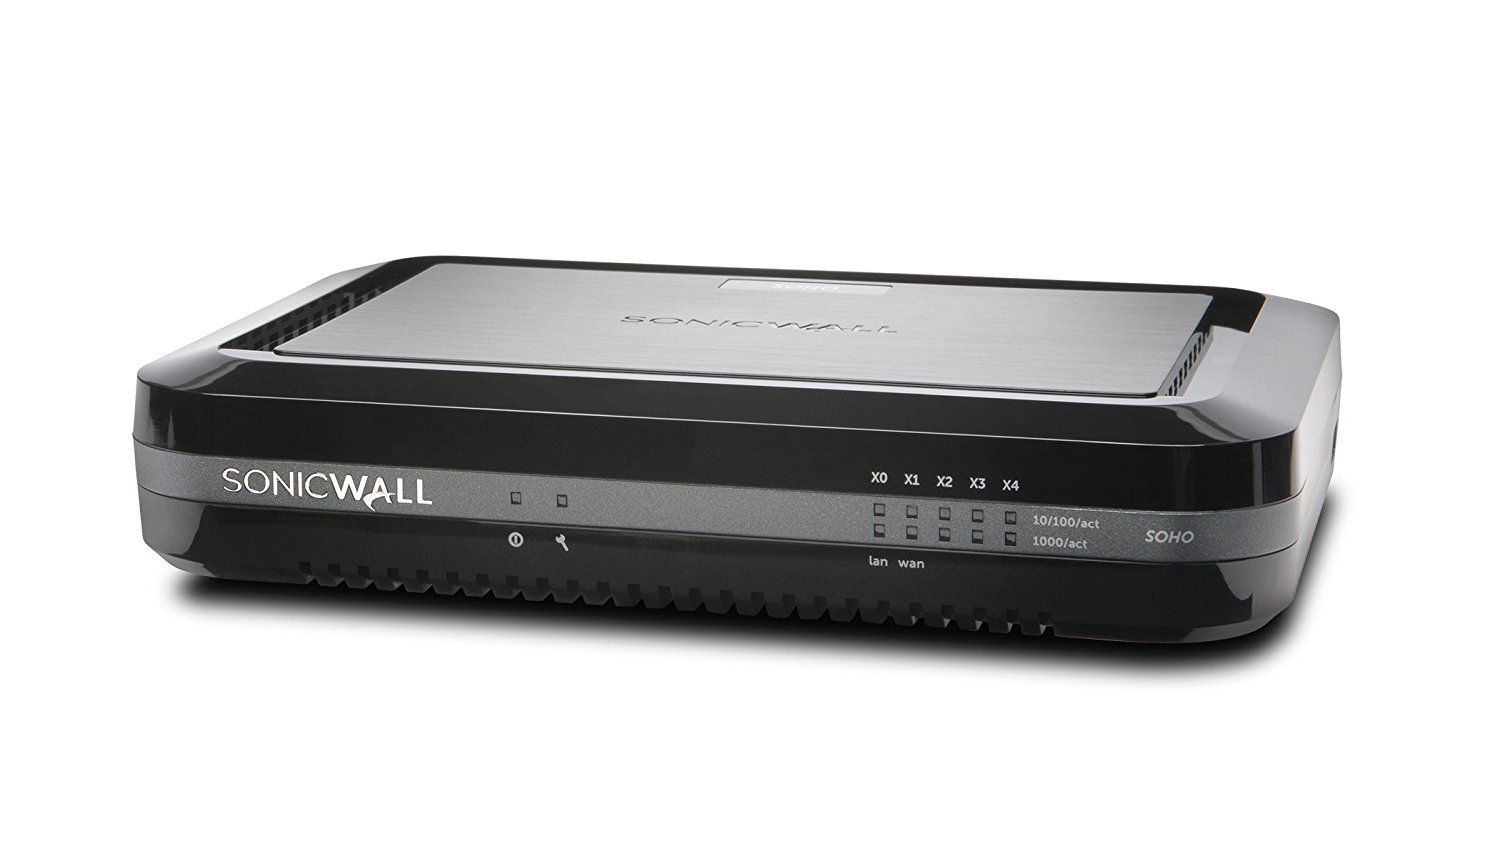 Dell Security SonicWALL Soho Appliance (01-SSC-0217)